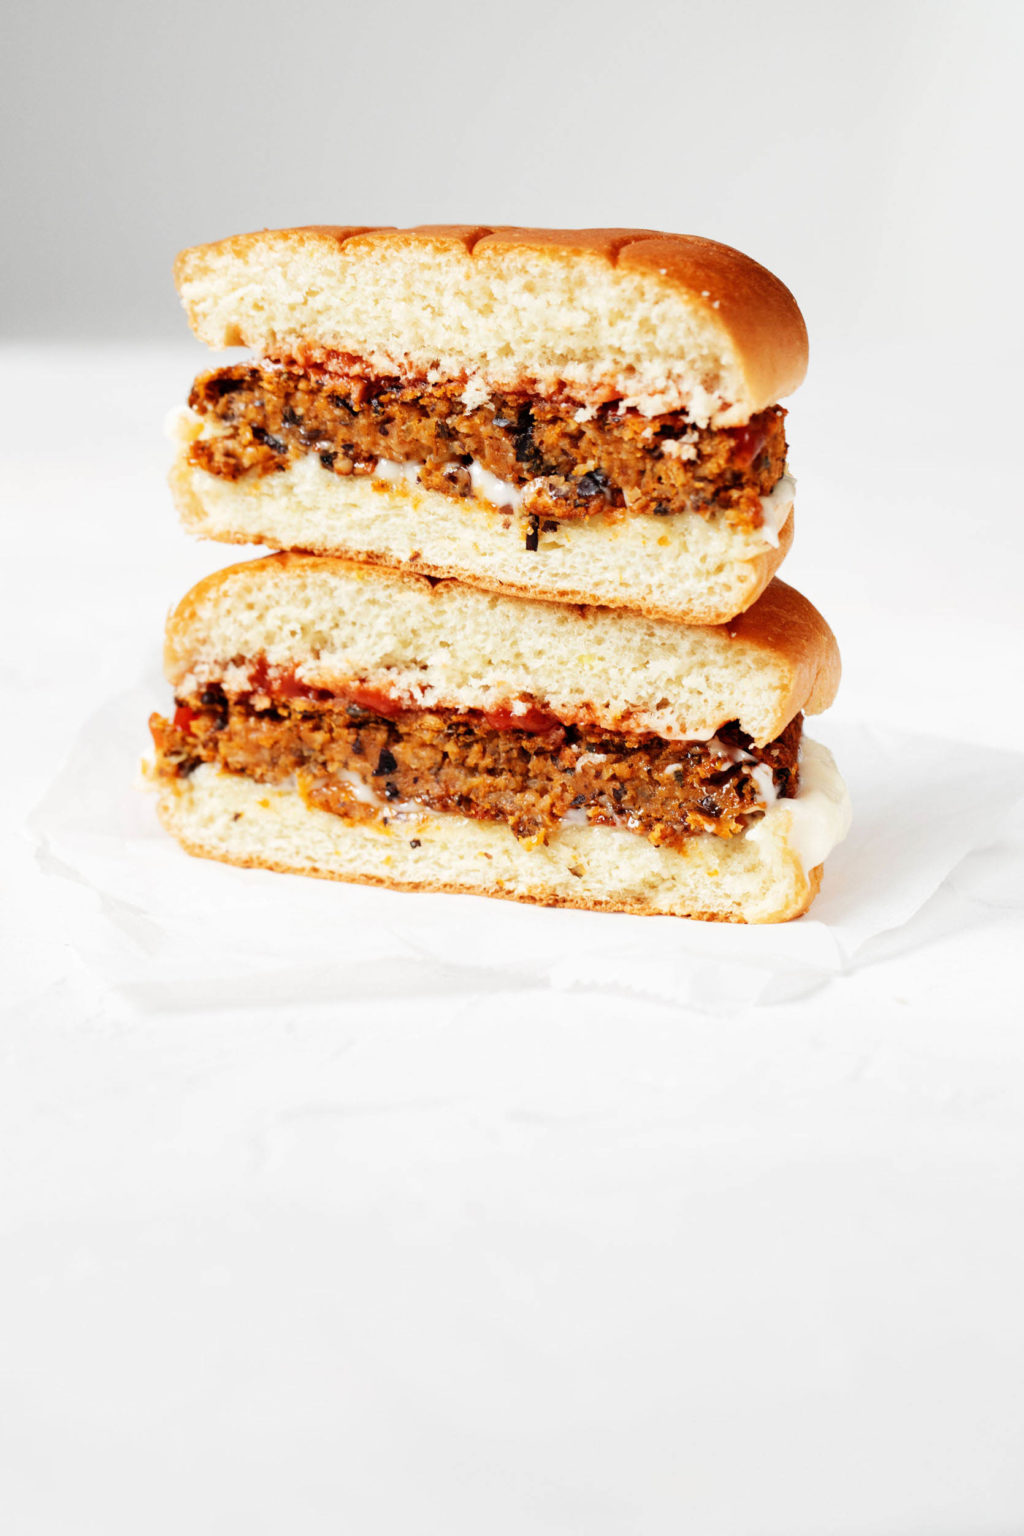 Vegan black bean sweet potatoes are served on a hamburger bun with ketchup and mayonnaise. The burger is cut in half, revealing a crosswise section.